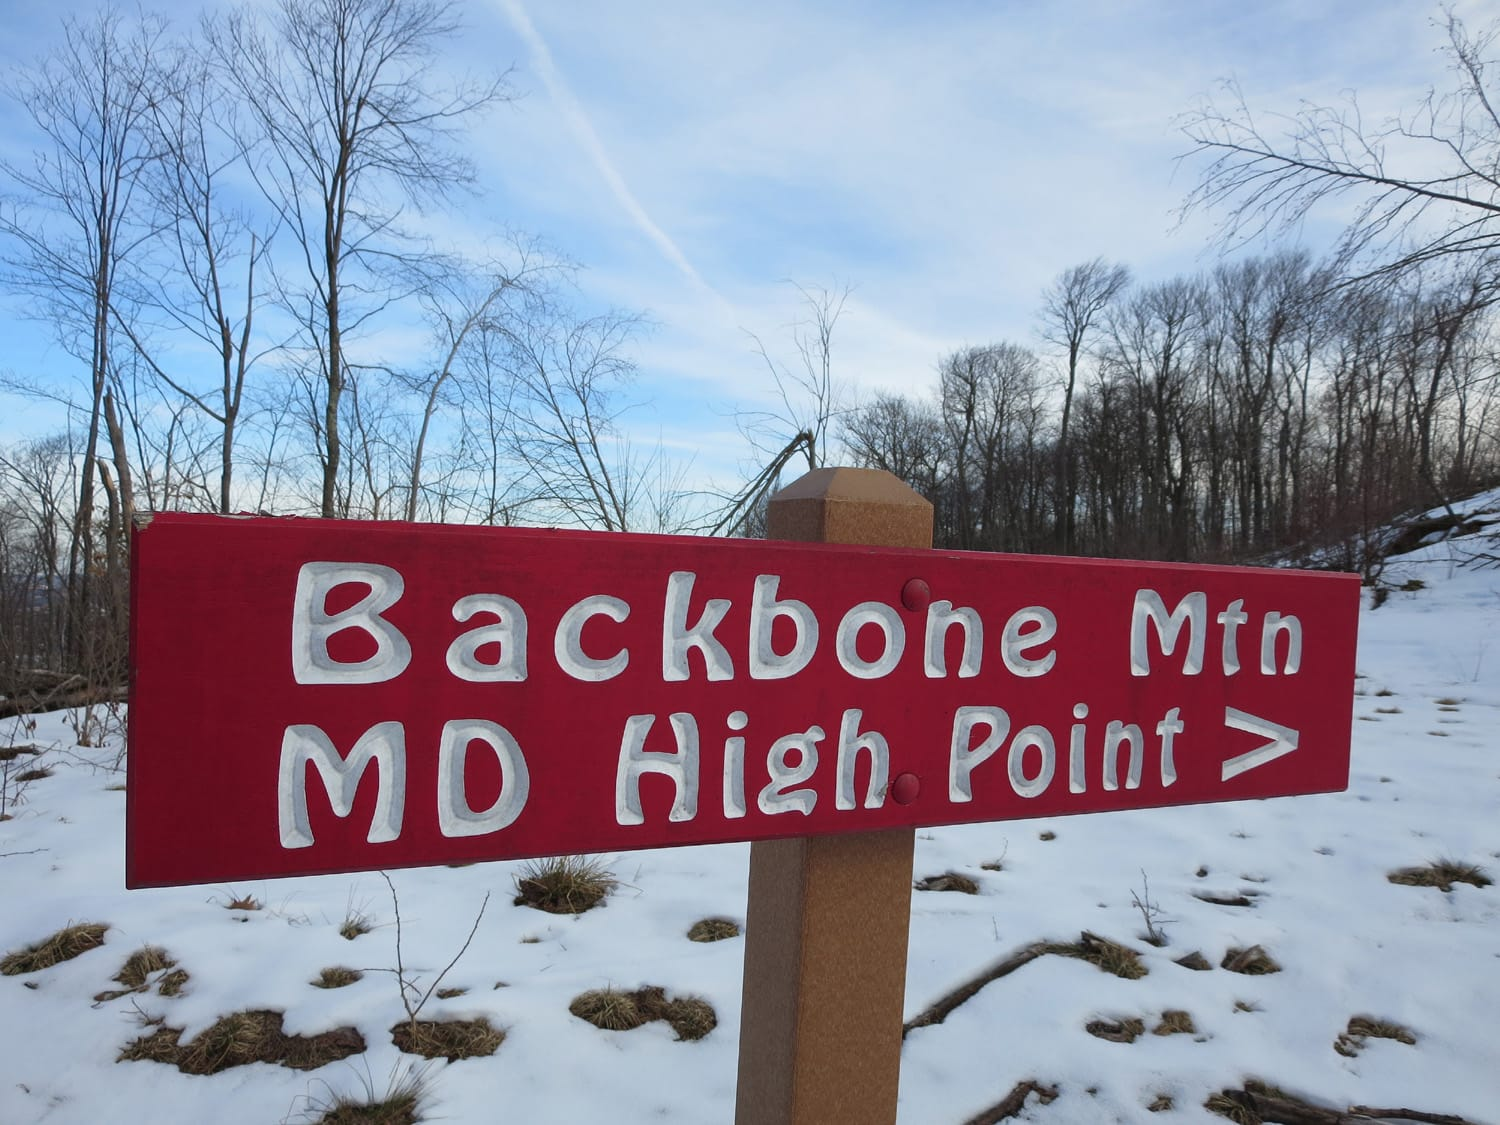 Backbone Mountain, Maryland Highpoint